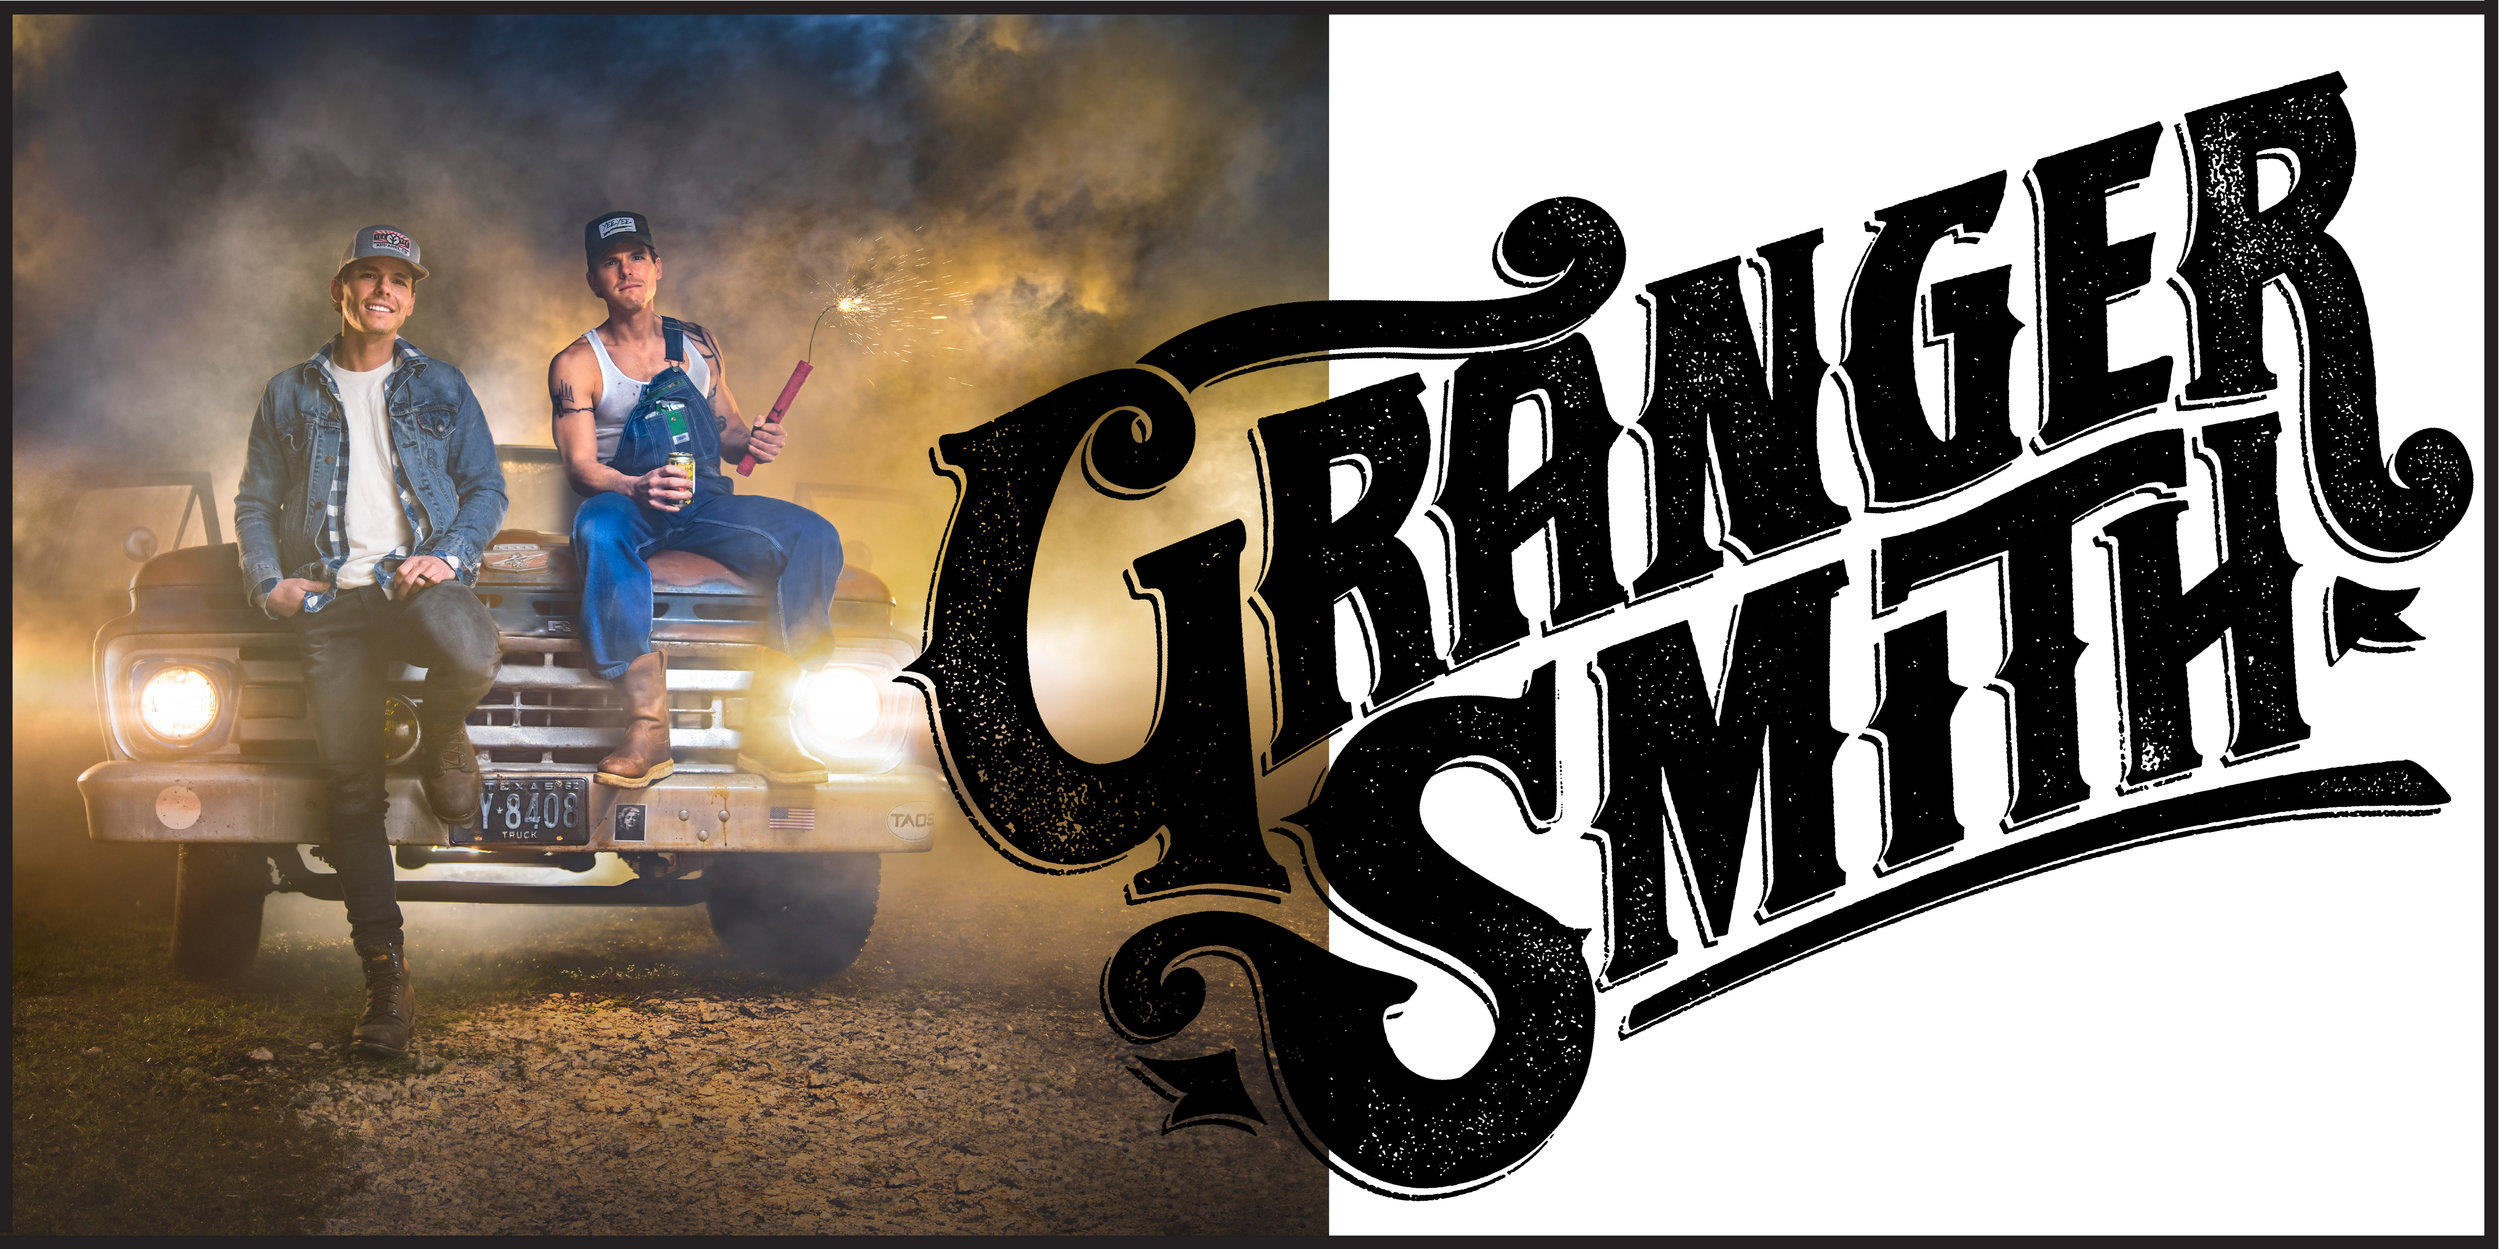 Granger Smith set to light up the Warehouse stage August 4th for a unforgettable night of live Country Music you can sing every word to. Tickets go on 6/26 @ 10:00 AM! Western CO Let's Sell This Thing out for Granger and his Team! Let em hear ya…